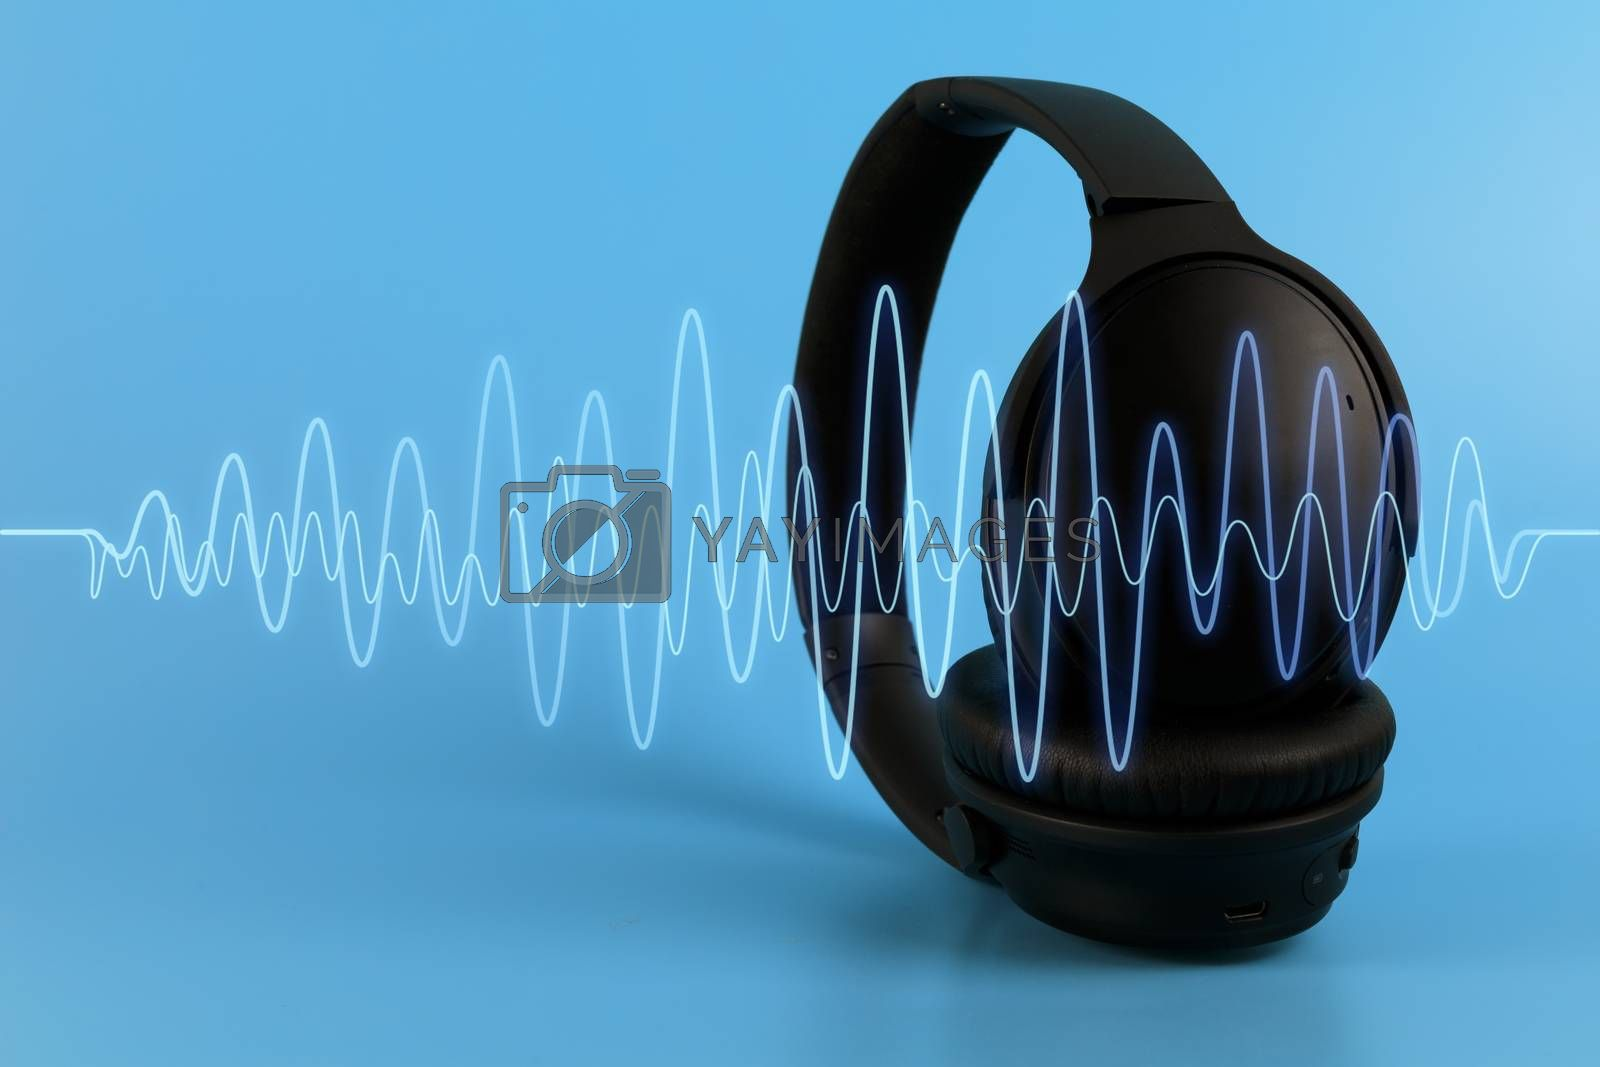 Black music headphones with blue sound wave on blue background. Multimedia concept with copy space